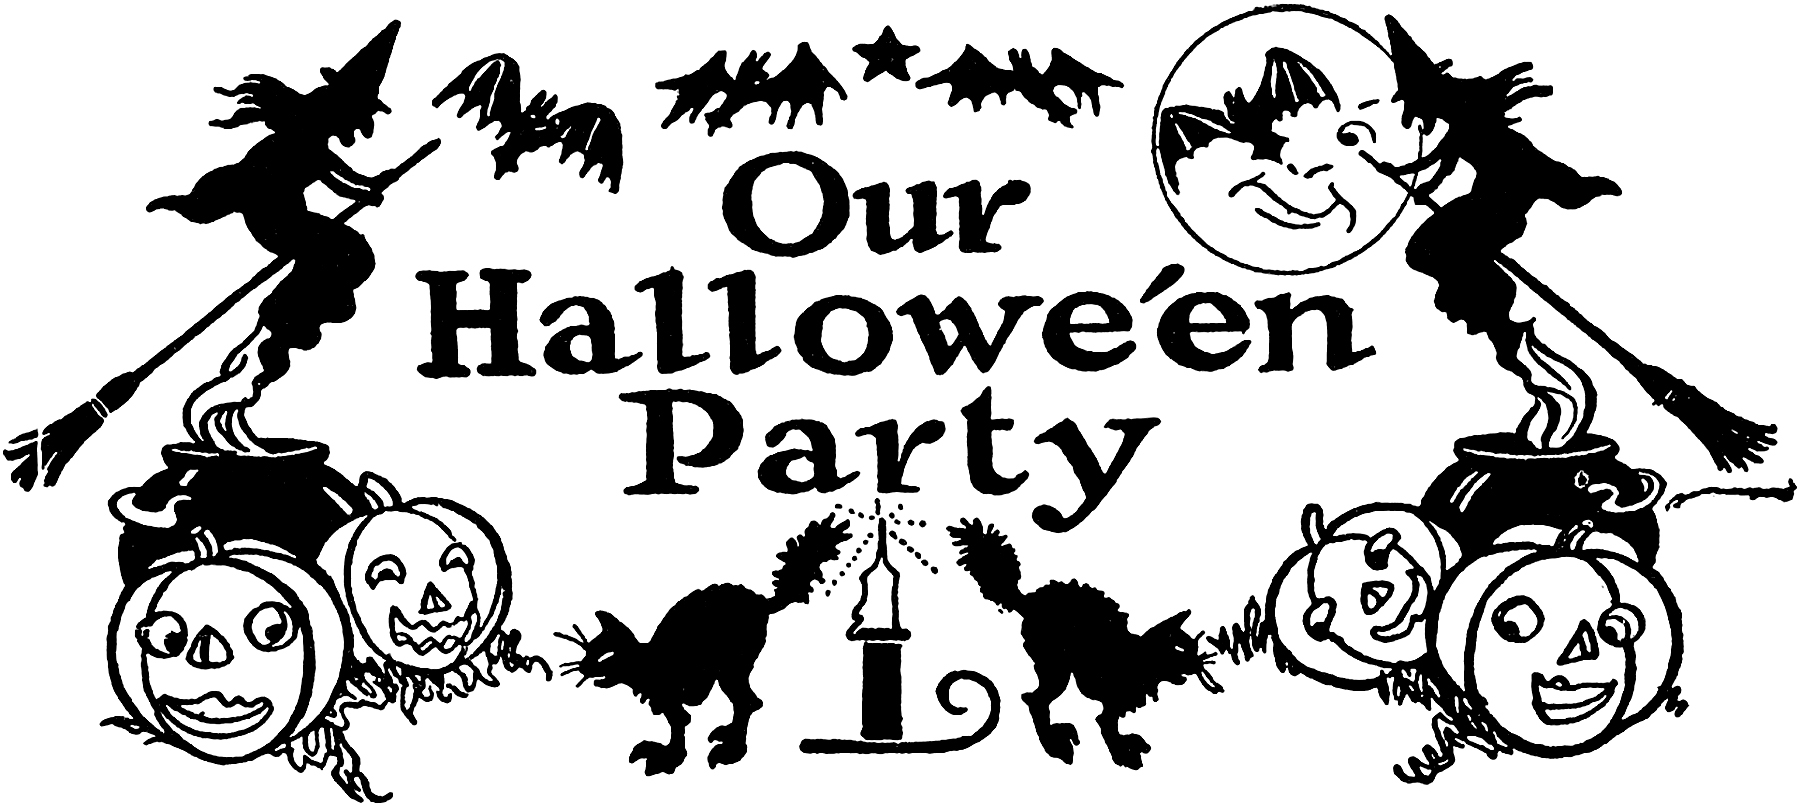 hight resolution of today i m sharing this nostalgic black and white halloween clip art this retro halloween party clip art has witches bats jack o lanterns black cats